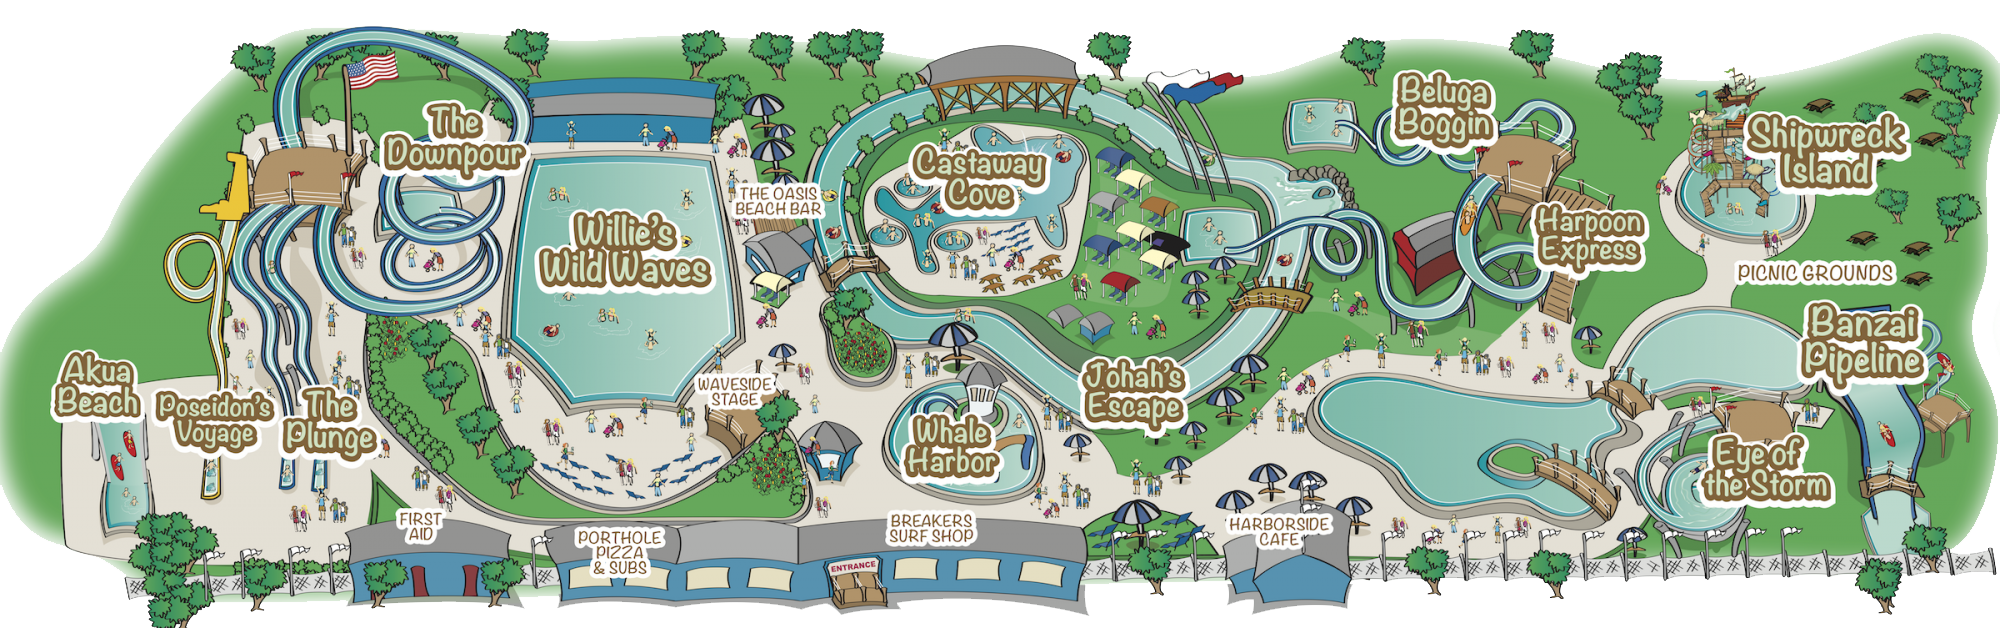 Map of Whale's Tale Waterpark